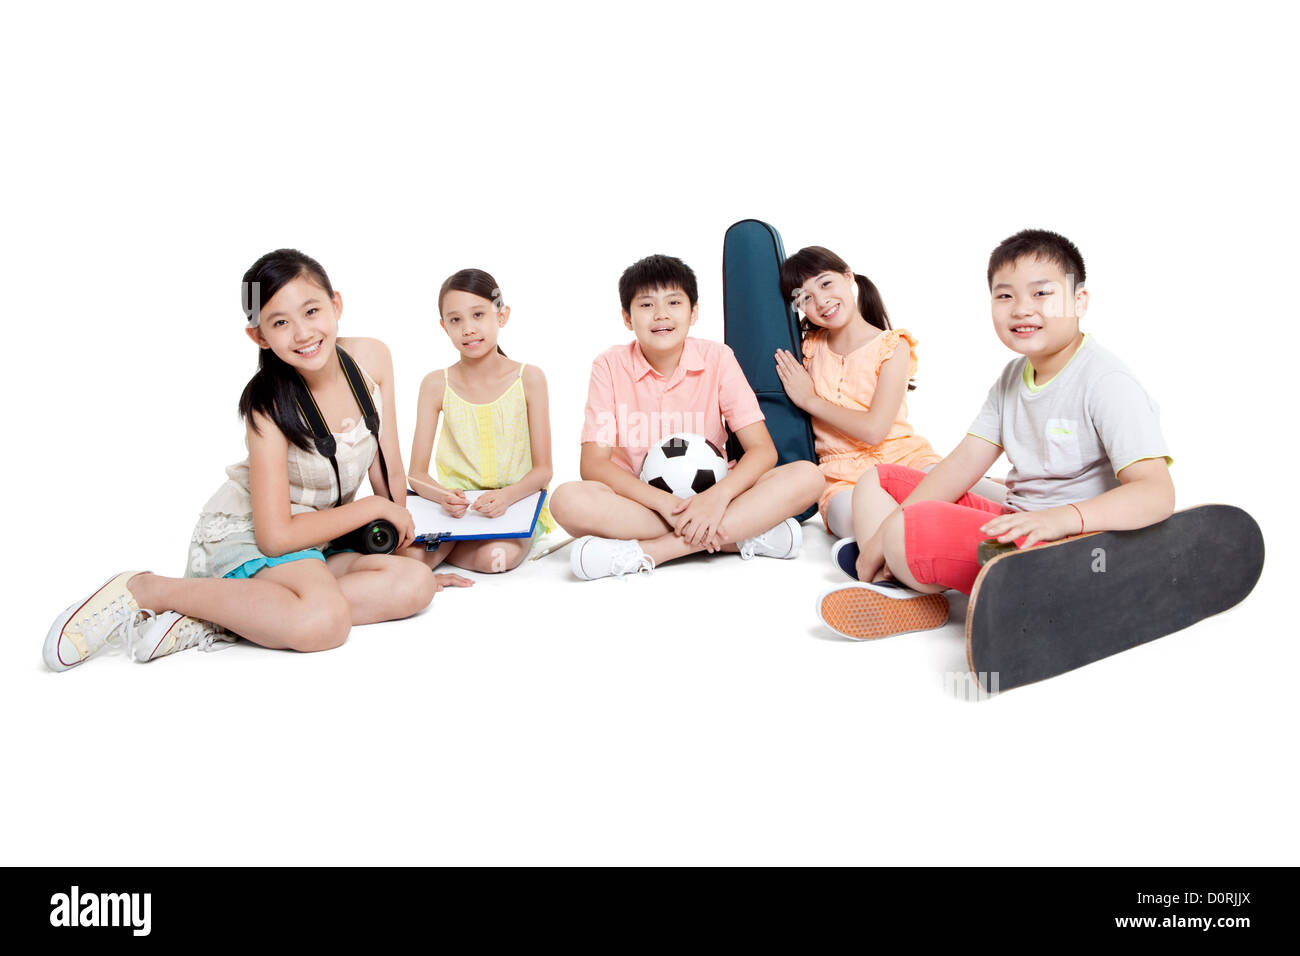 Merry children sitting on the floor and their leisure hobbies - Stock Image